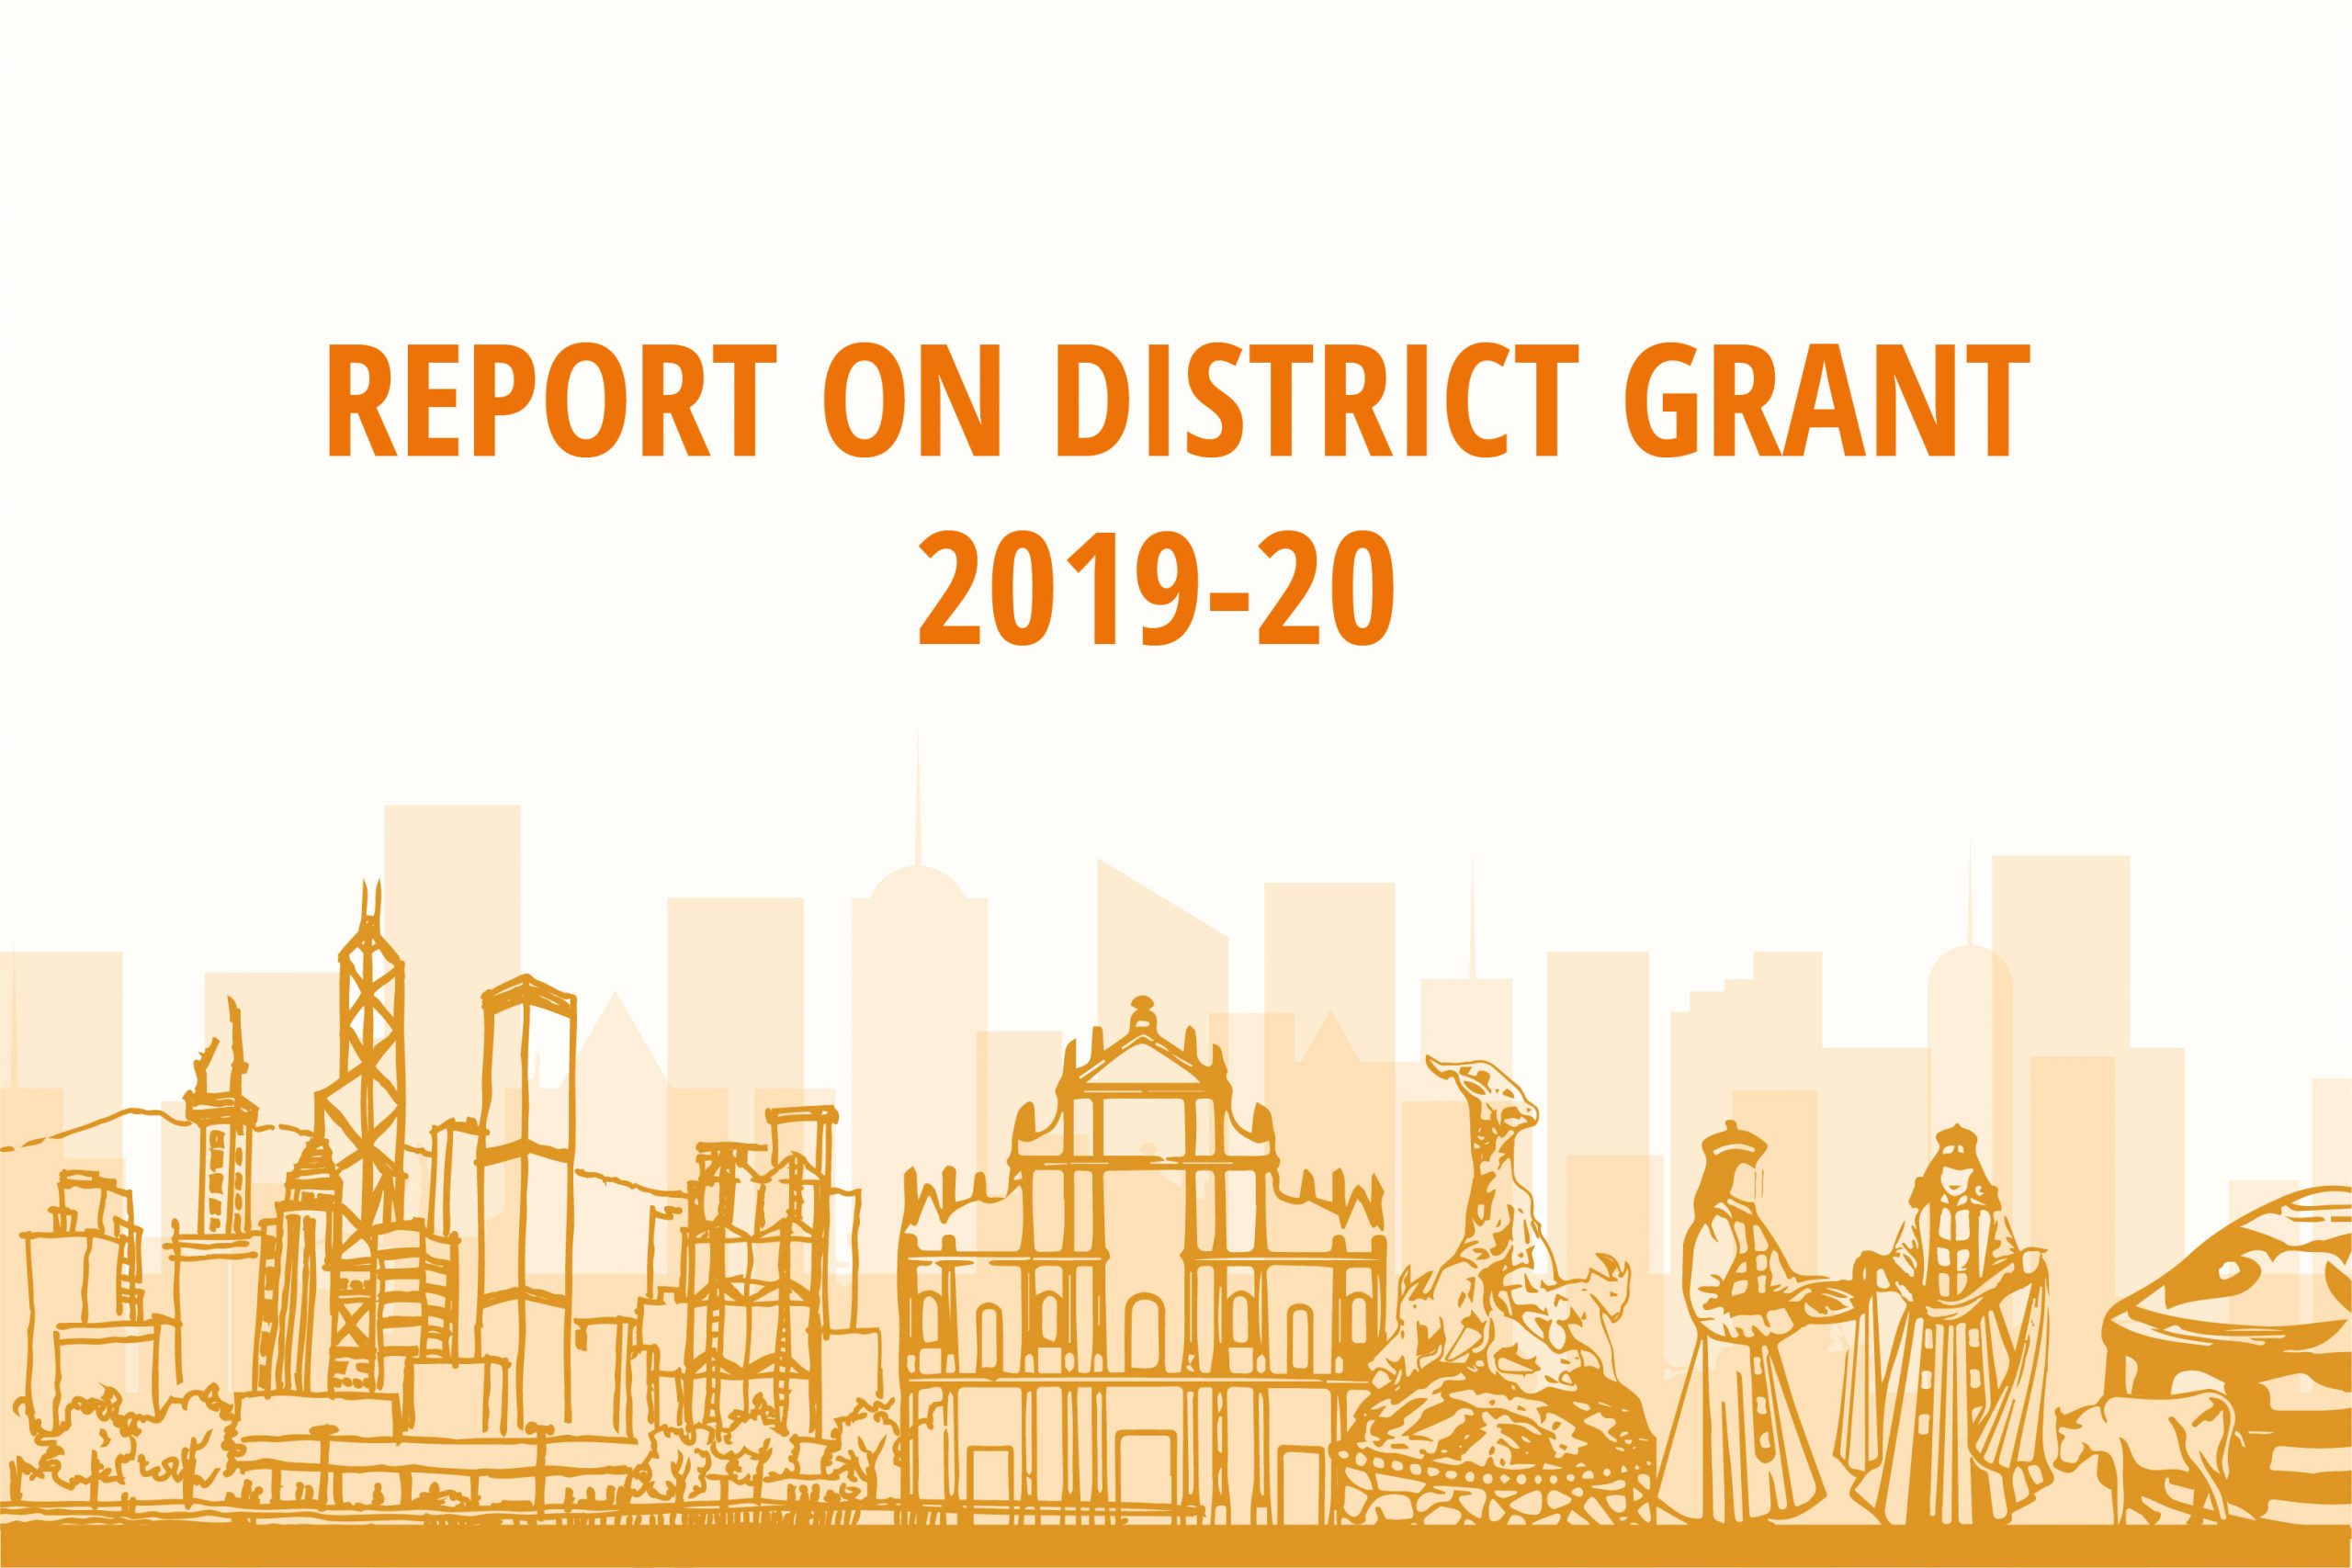 Report on District Grant 2019-20,  by PP Alice Tsang